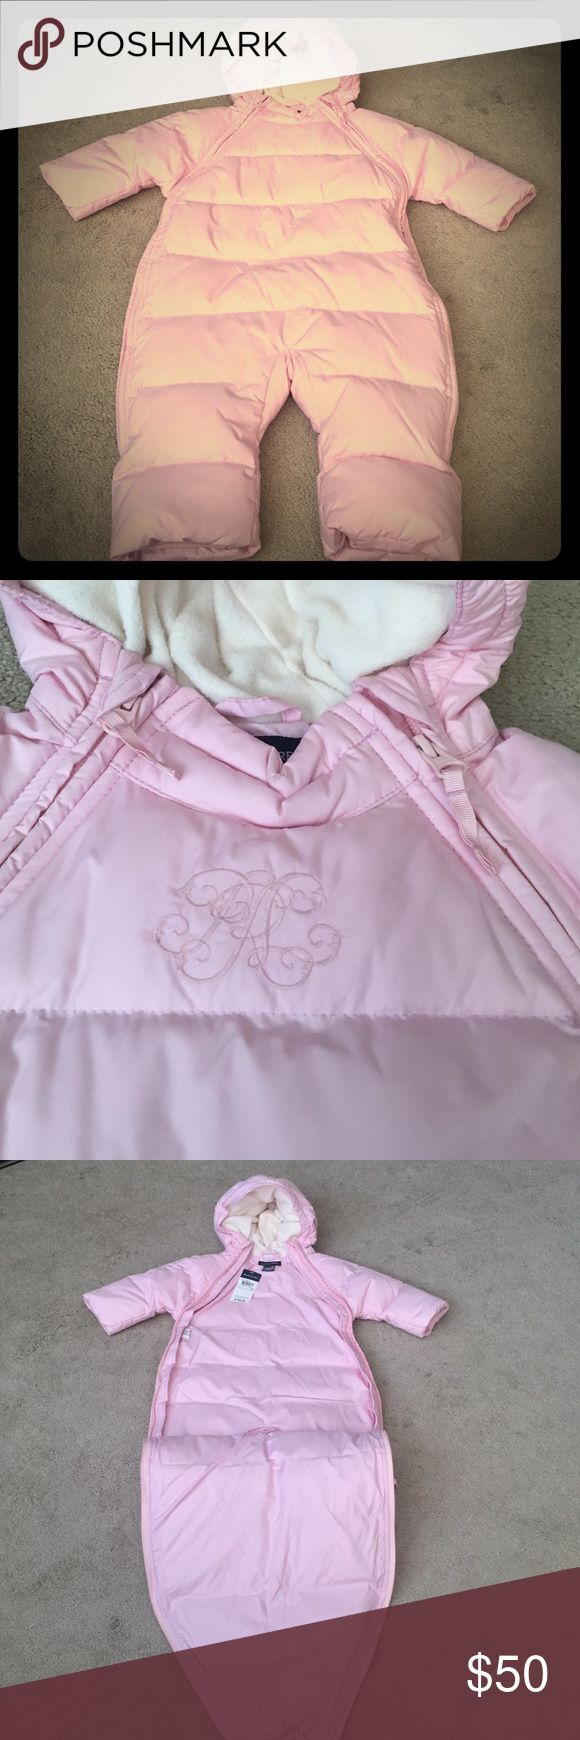 """Ralph Lauren Snow Suit - 12 months New with tags Ralph Lauren snow suit. No flaws. Never used. Size 12 months - 29-30.5"""" / 18.5-23 lbs. Light pink color. Zips down on  sides for easy on/off. Down is 80% down 20% waterfowl feathers. Ralph Lauren Jackets & Coats Puffers"""